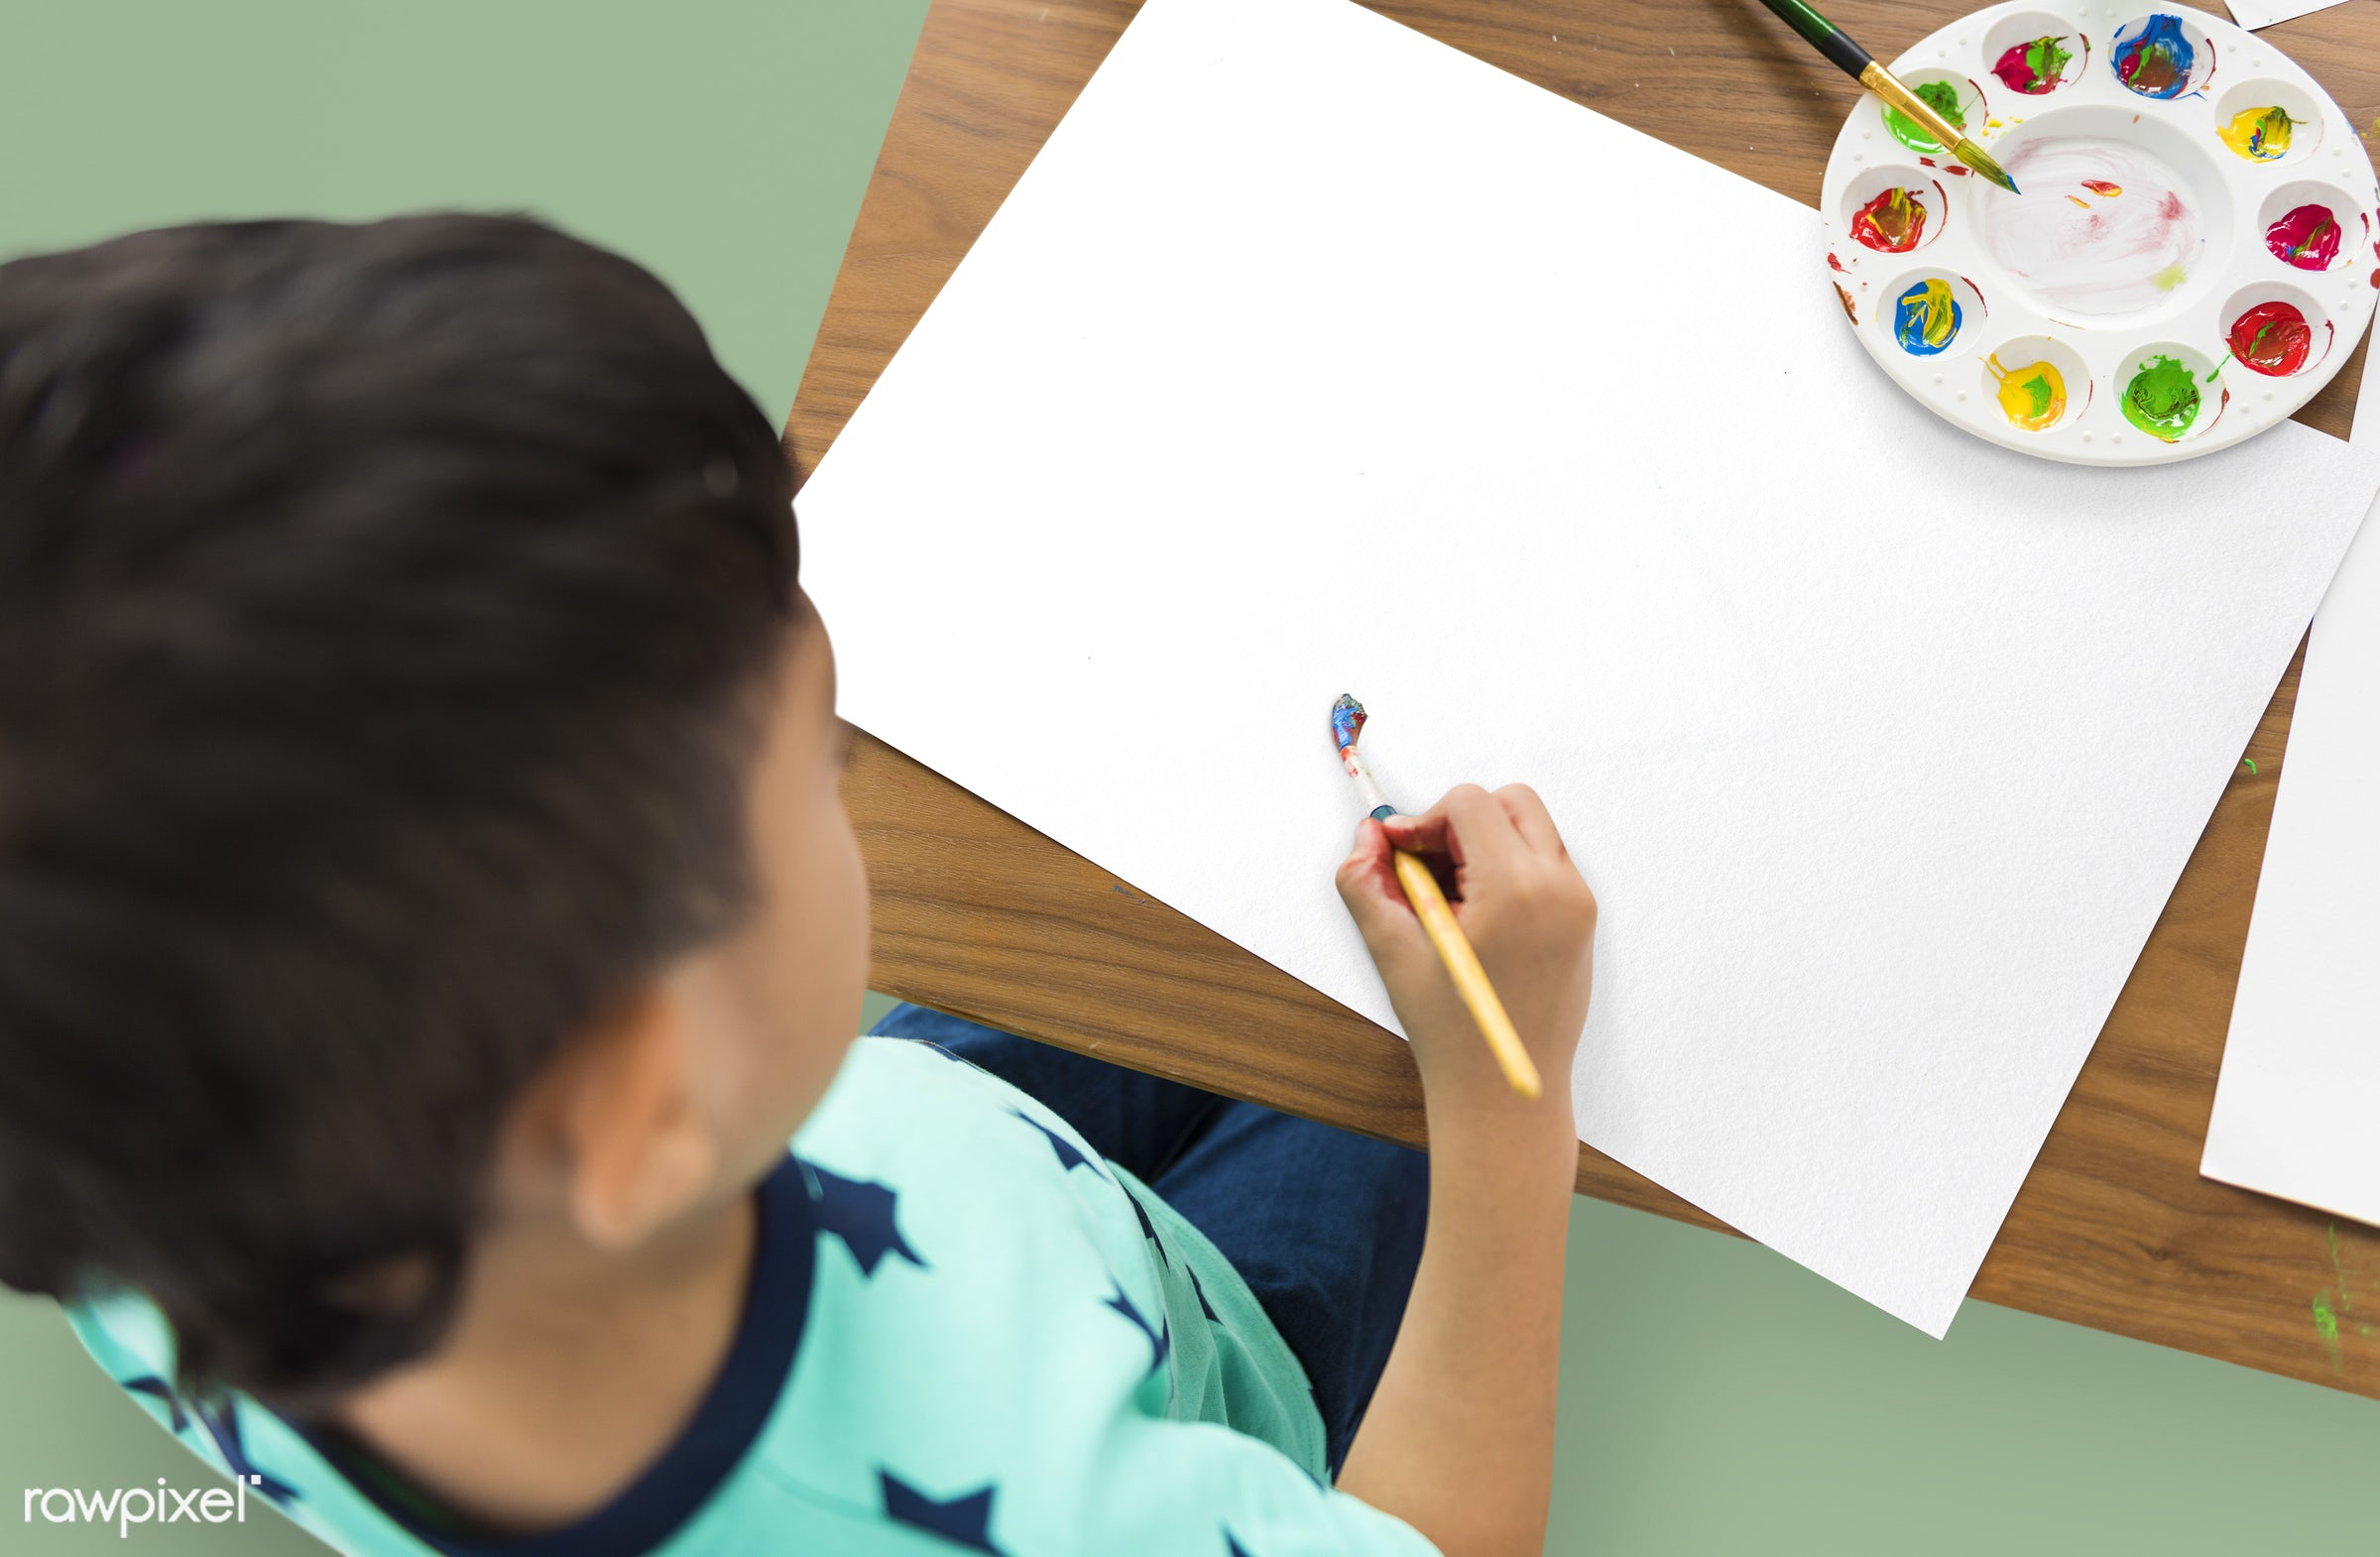 expression, studio, person, top view, designing, top shot, children, little, people, creativity, top down, kid, paint brush...